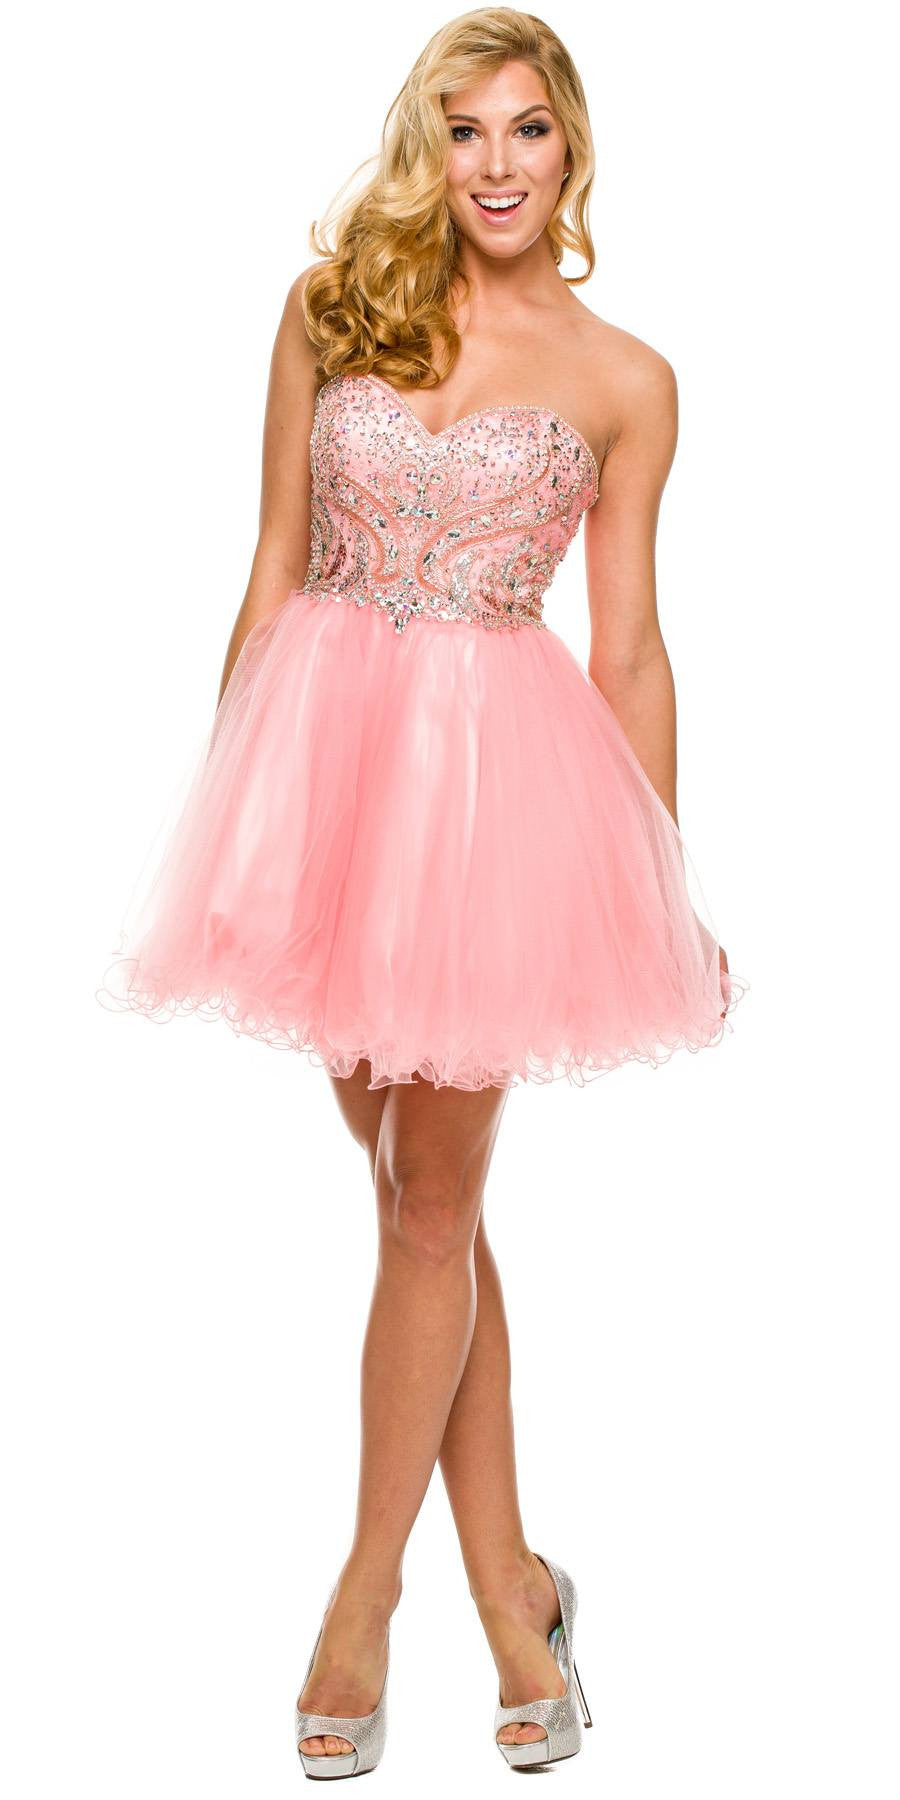 Short A Line Poofy Ball Gown Blush Tulle Skirt Strapless Beads